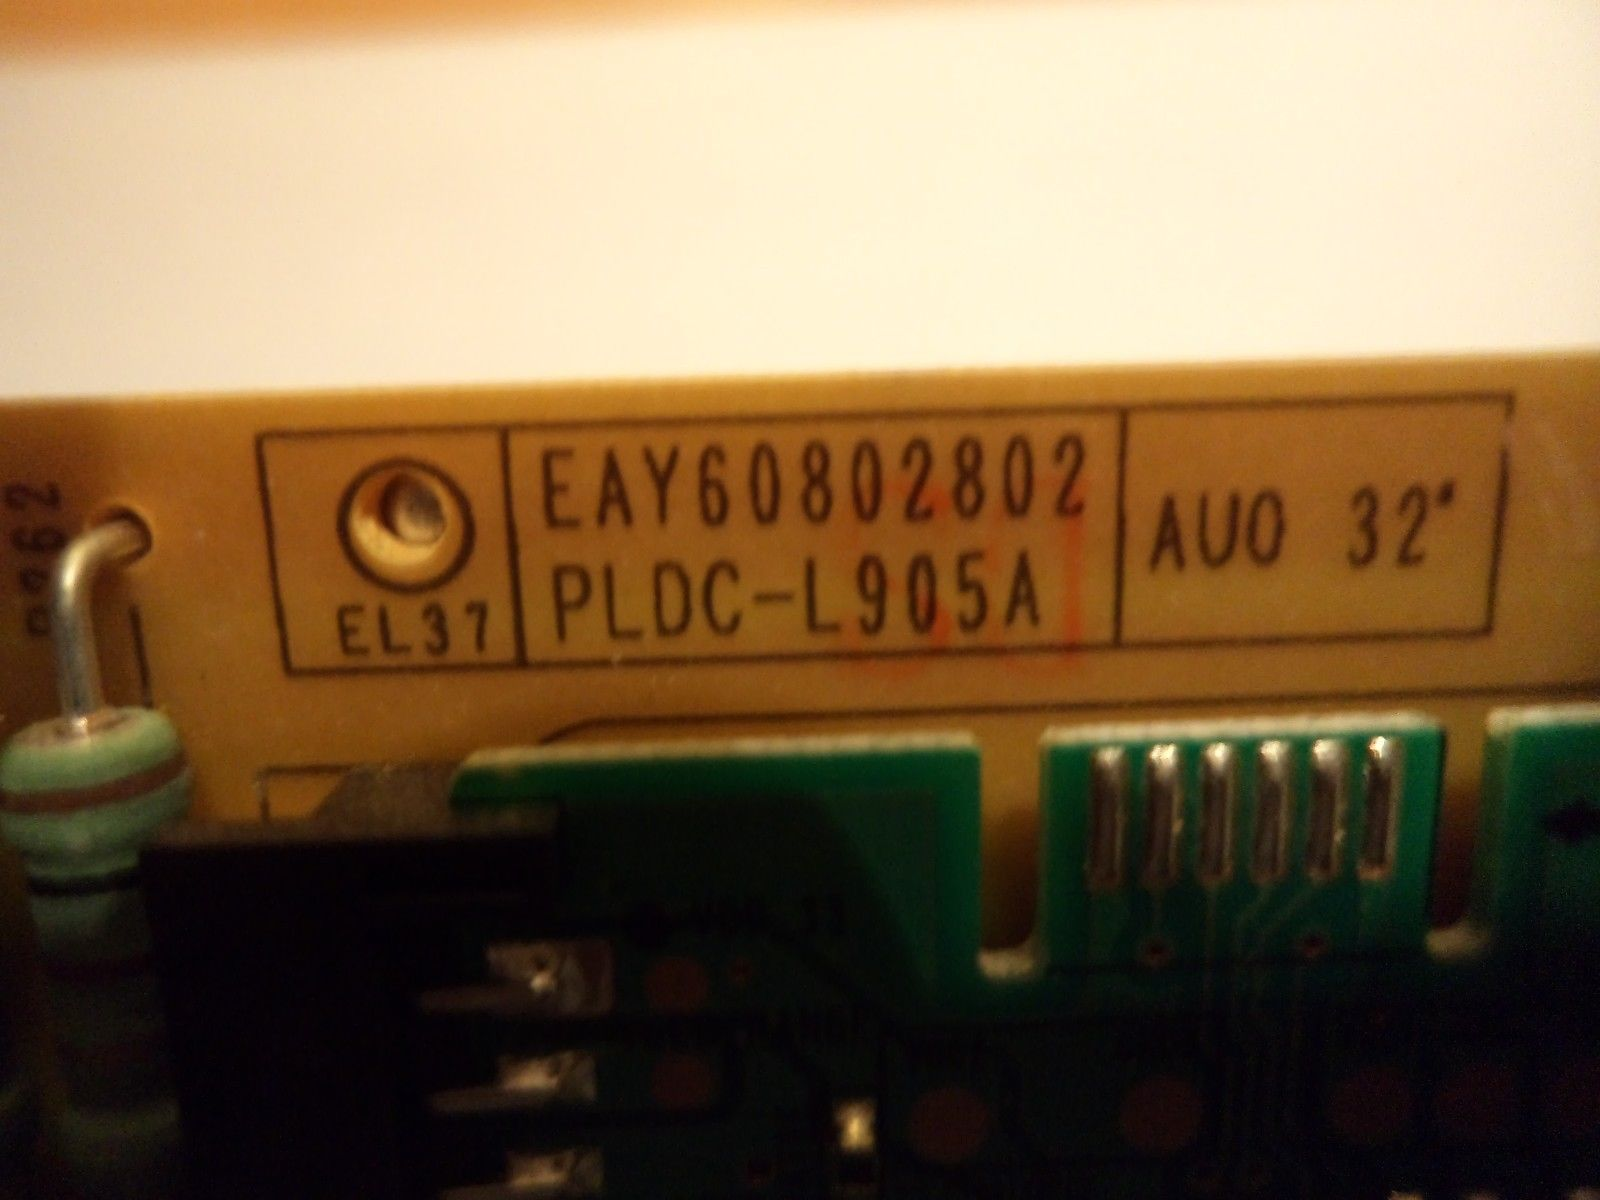 Power-Supply Board EAY60802802 P/N:3PAGC10017B-R for LCD TV LG32